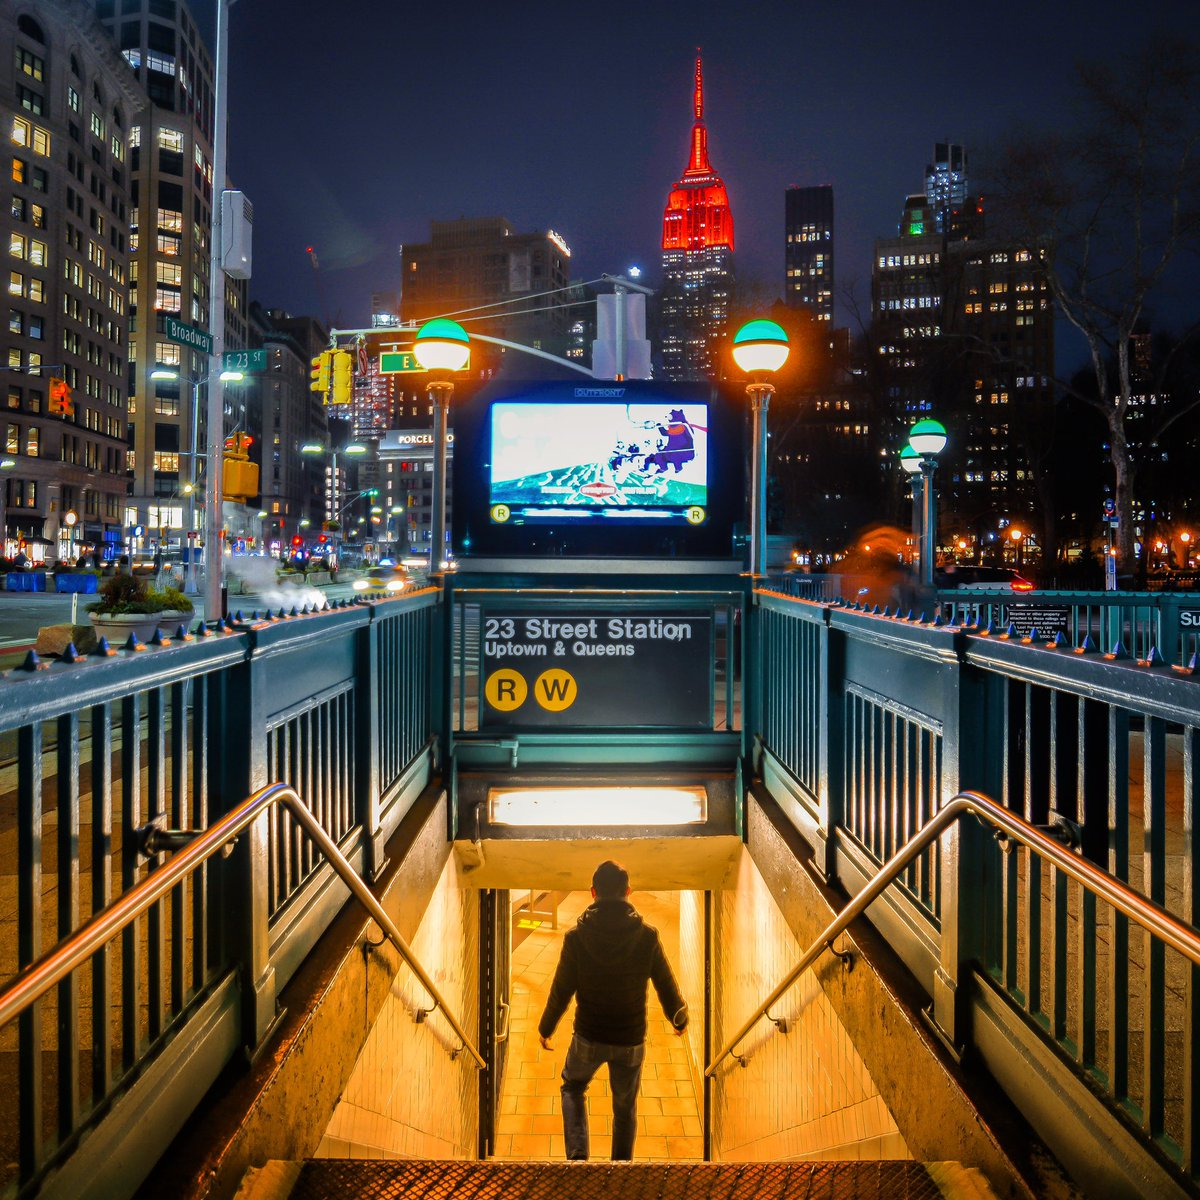 The Empire State Building glowing in celebration of the Lunar New Year, year of the (subway) Rat. Photographed last night at the 23rd Street Station in the Flatiron District.